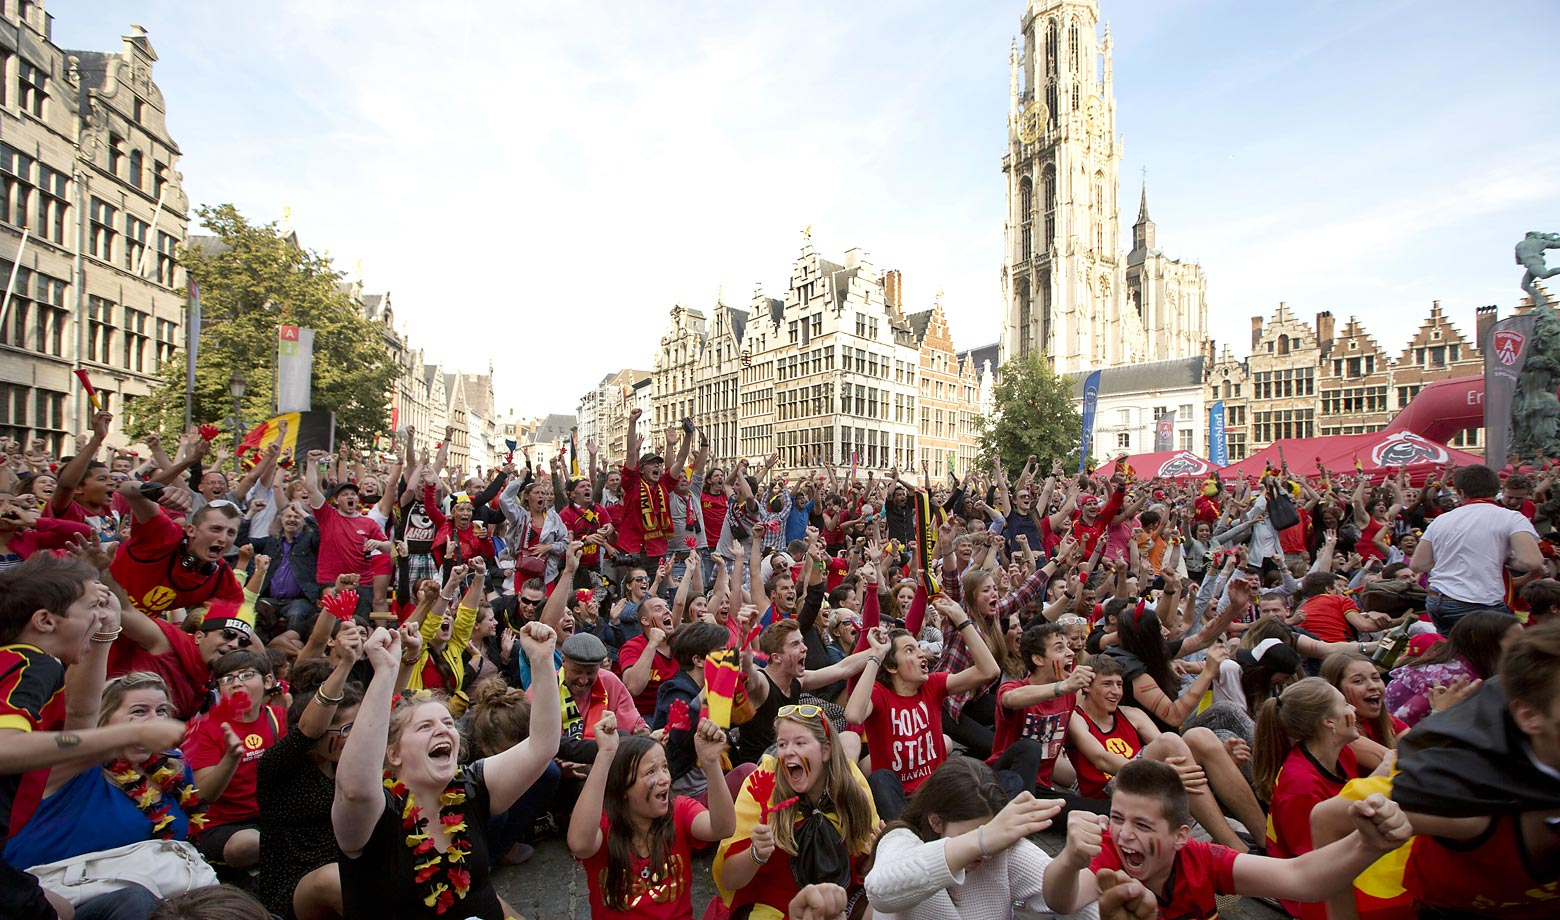 Belgian fans watch on a giant screen in the Grote Markt in Antwerp, Belgium.